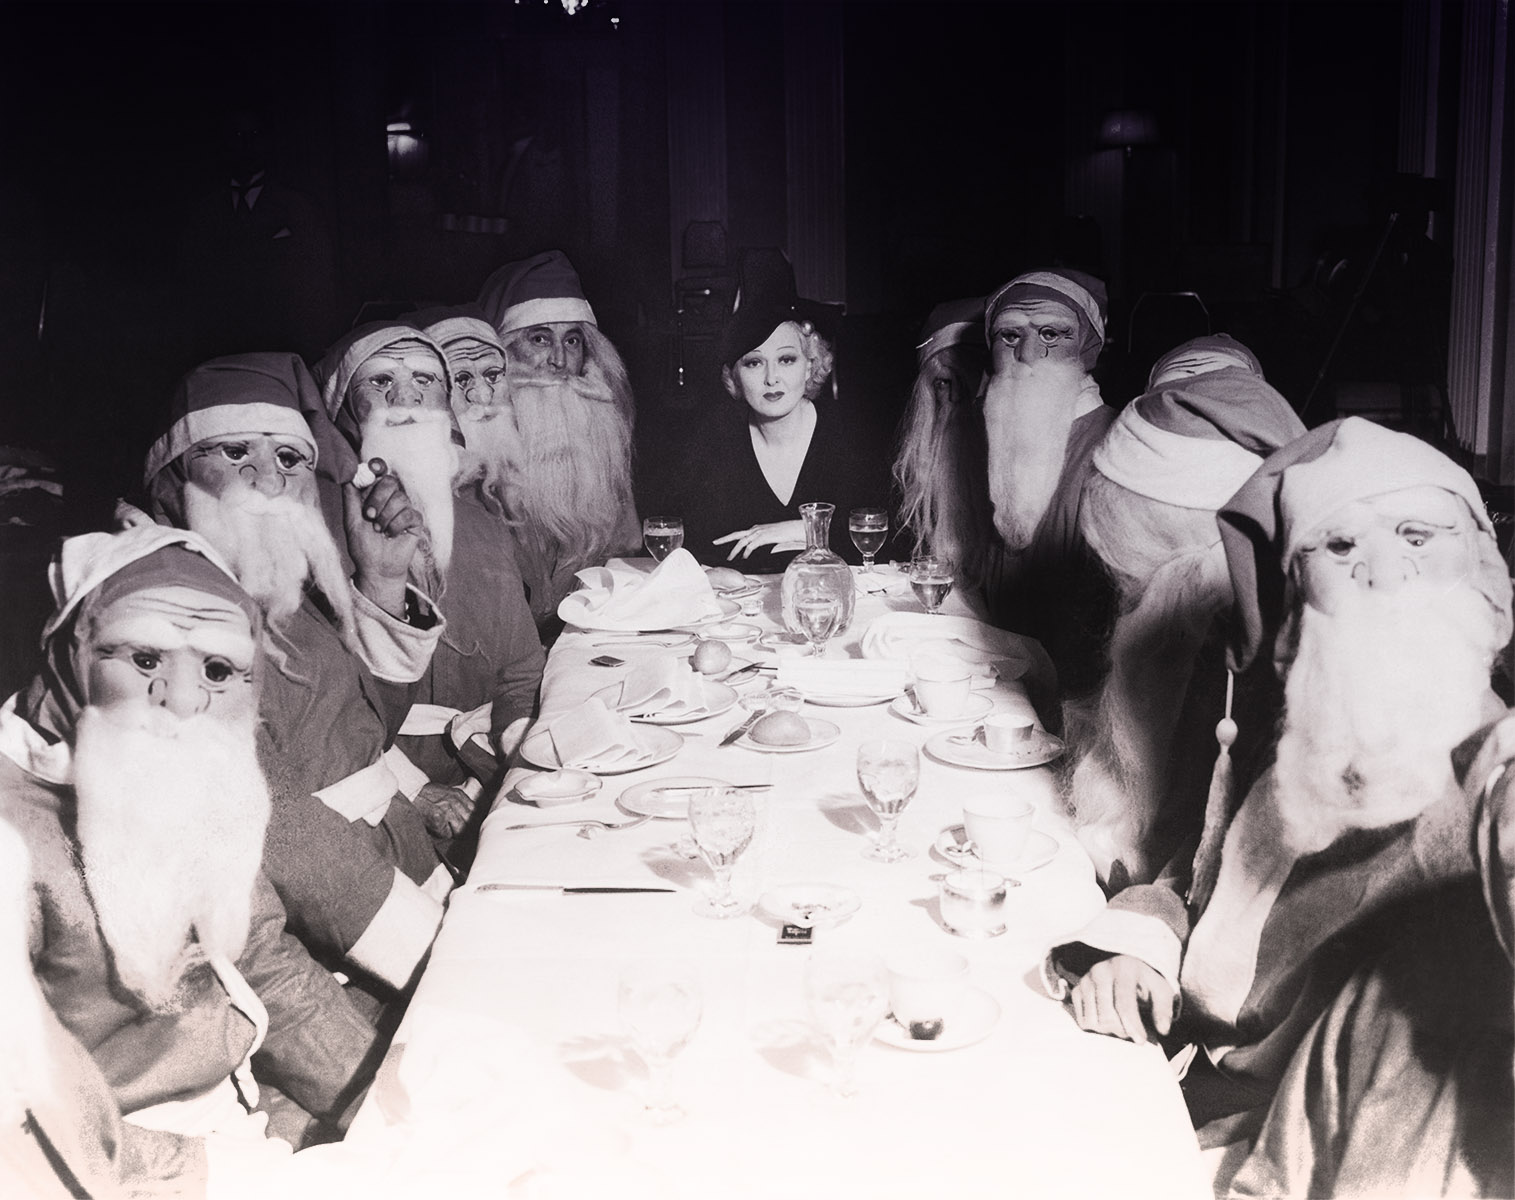 A vintage black and white photo features a woman in a hat at one end of a long table surrounded by men in horrifying santa masks.